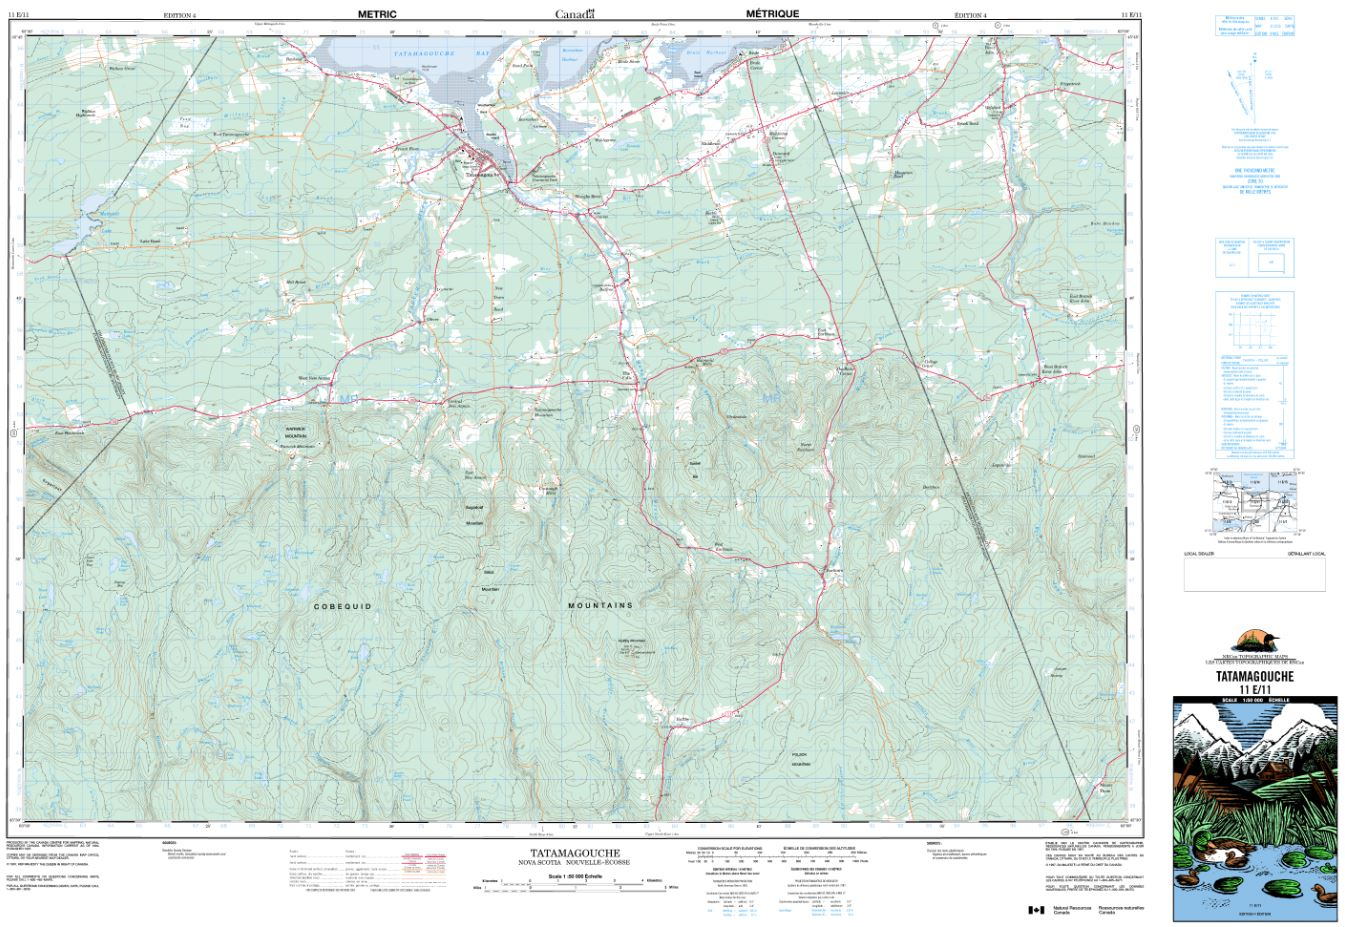 11E/11 Tatamagouche Topographic Map Nova Scotia